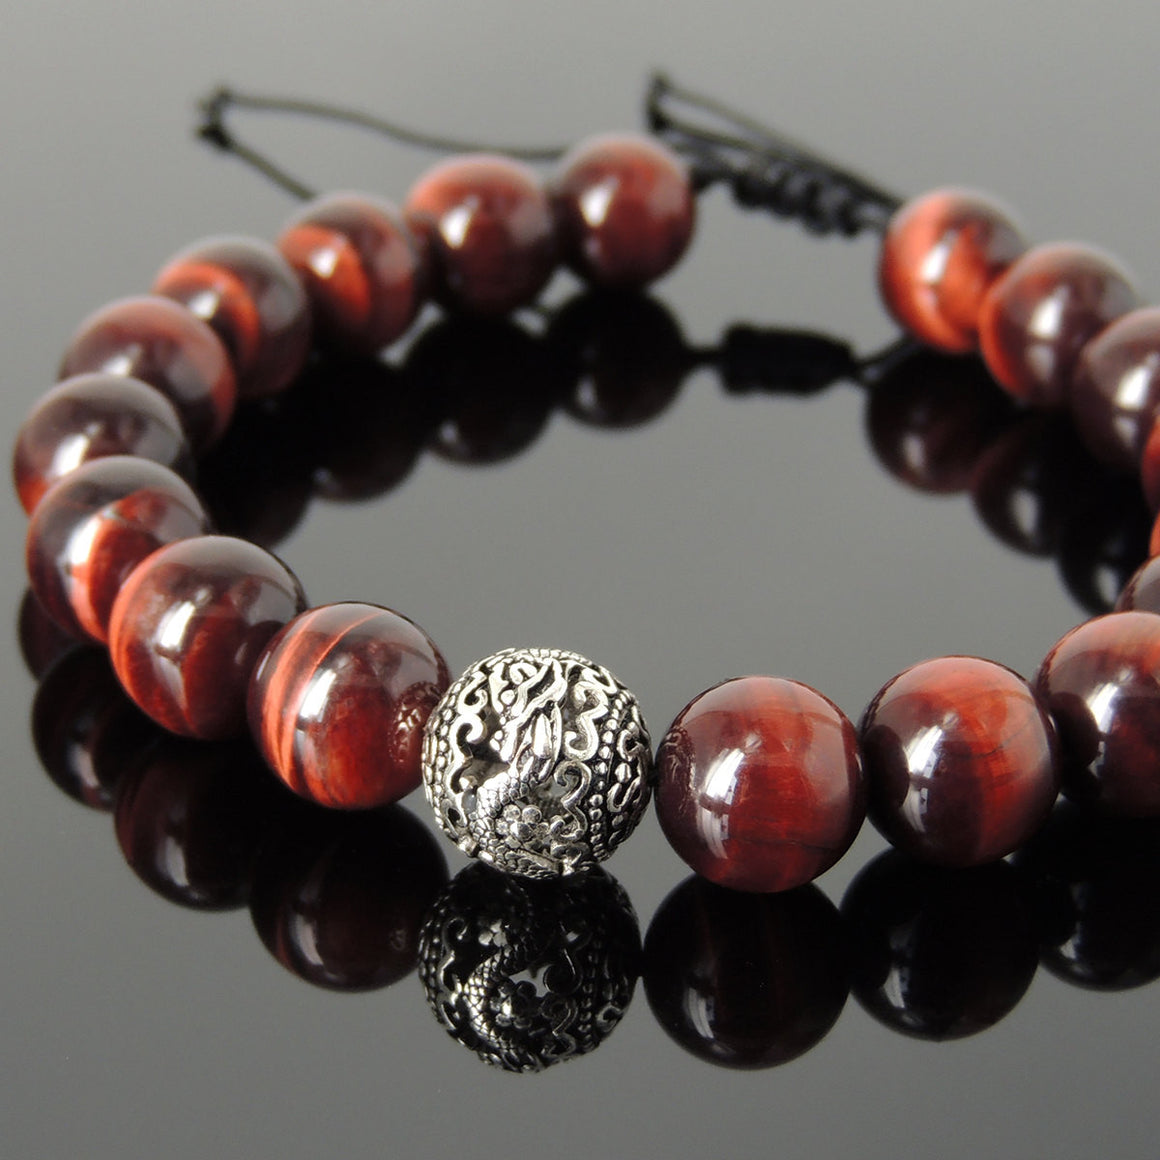 Red Tiger Eye Adjustable Braided Gemstone Bracelet with S925 Sterling Silver Dragon Bead - Handmade by Gem & Silver BR916